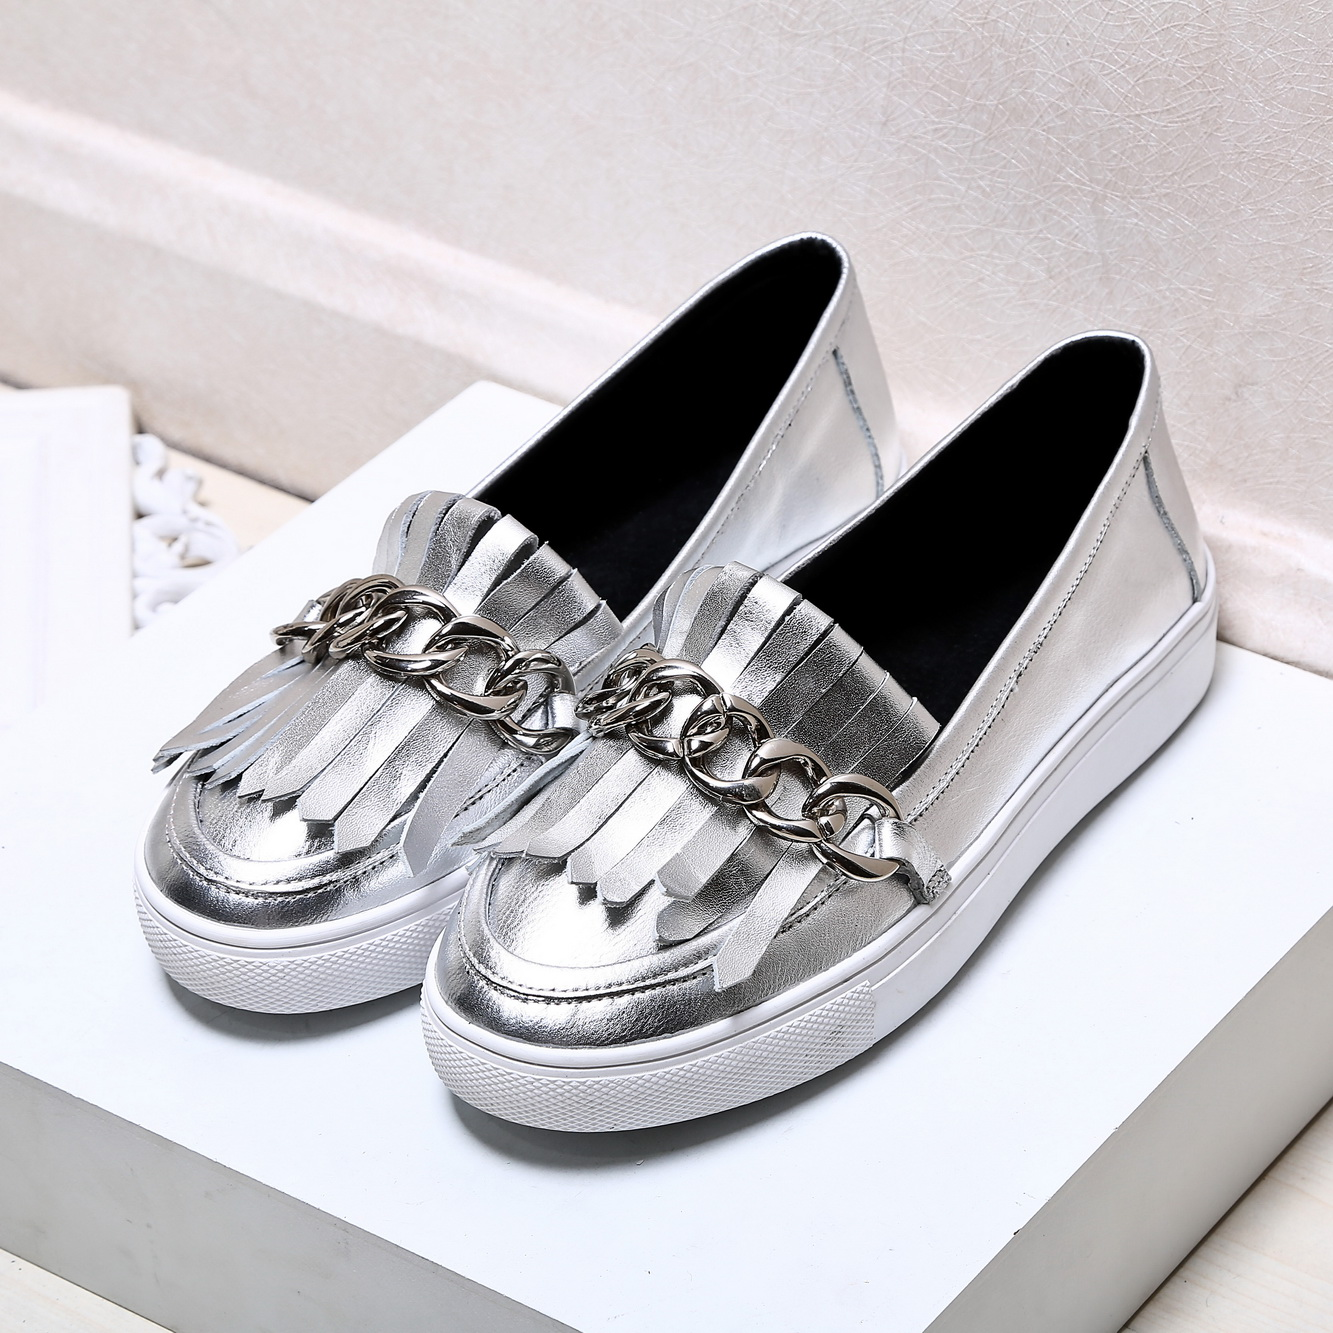 Womens Shoes Printed Silver Color Chains Design Ladies Loafers 2016 Spring Summer Casual Slip On Leather Flat Shoes Female Flats<br><br>Aliexpress